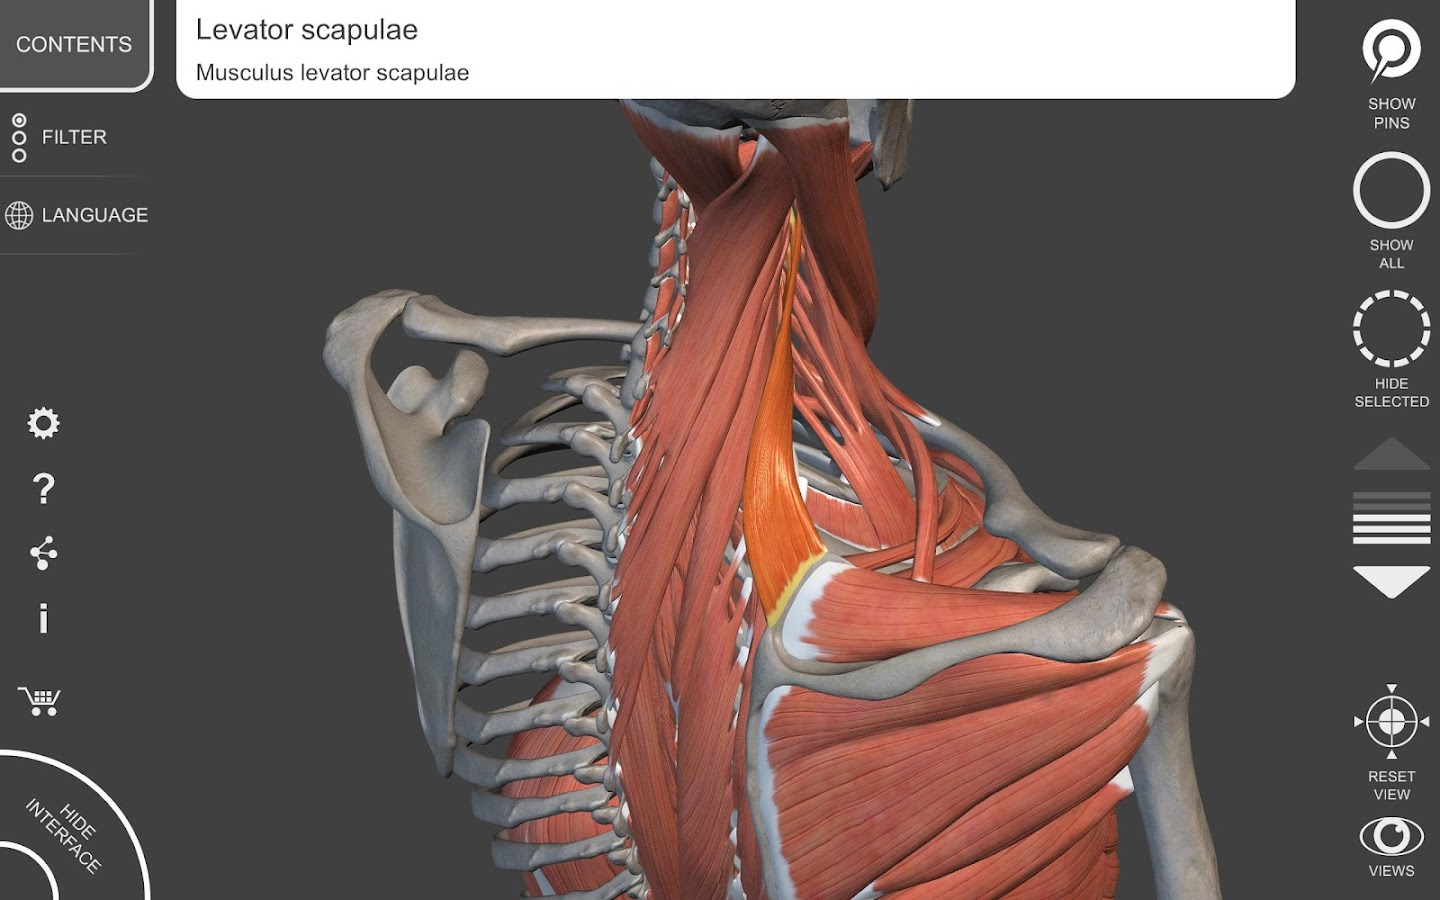 Muscle | Skeleton - 3D Atlas of Anatomy 1.7.5 APK + OBB (Data File ...